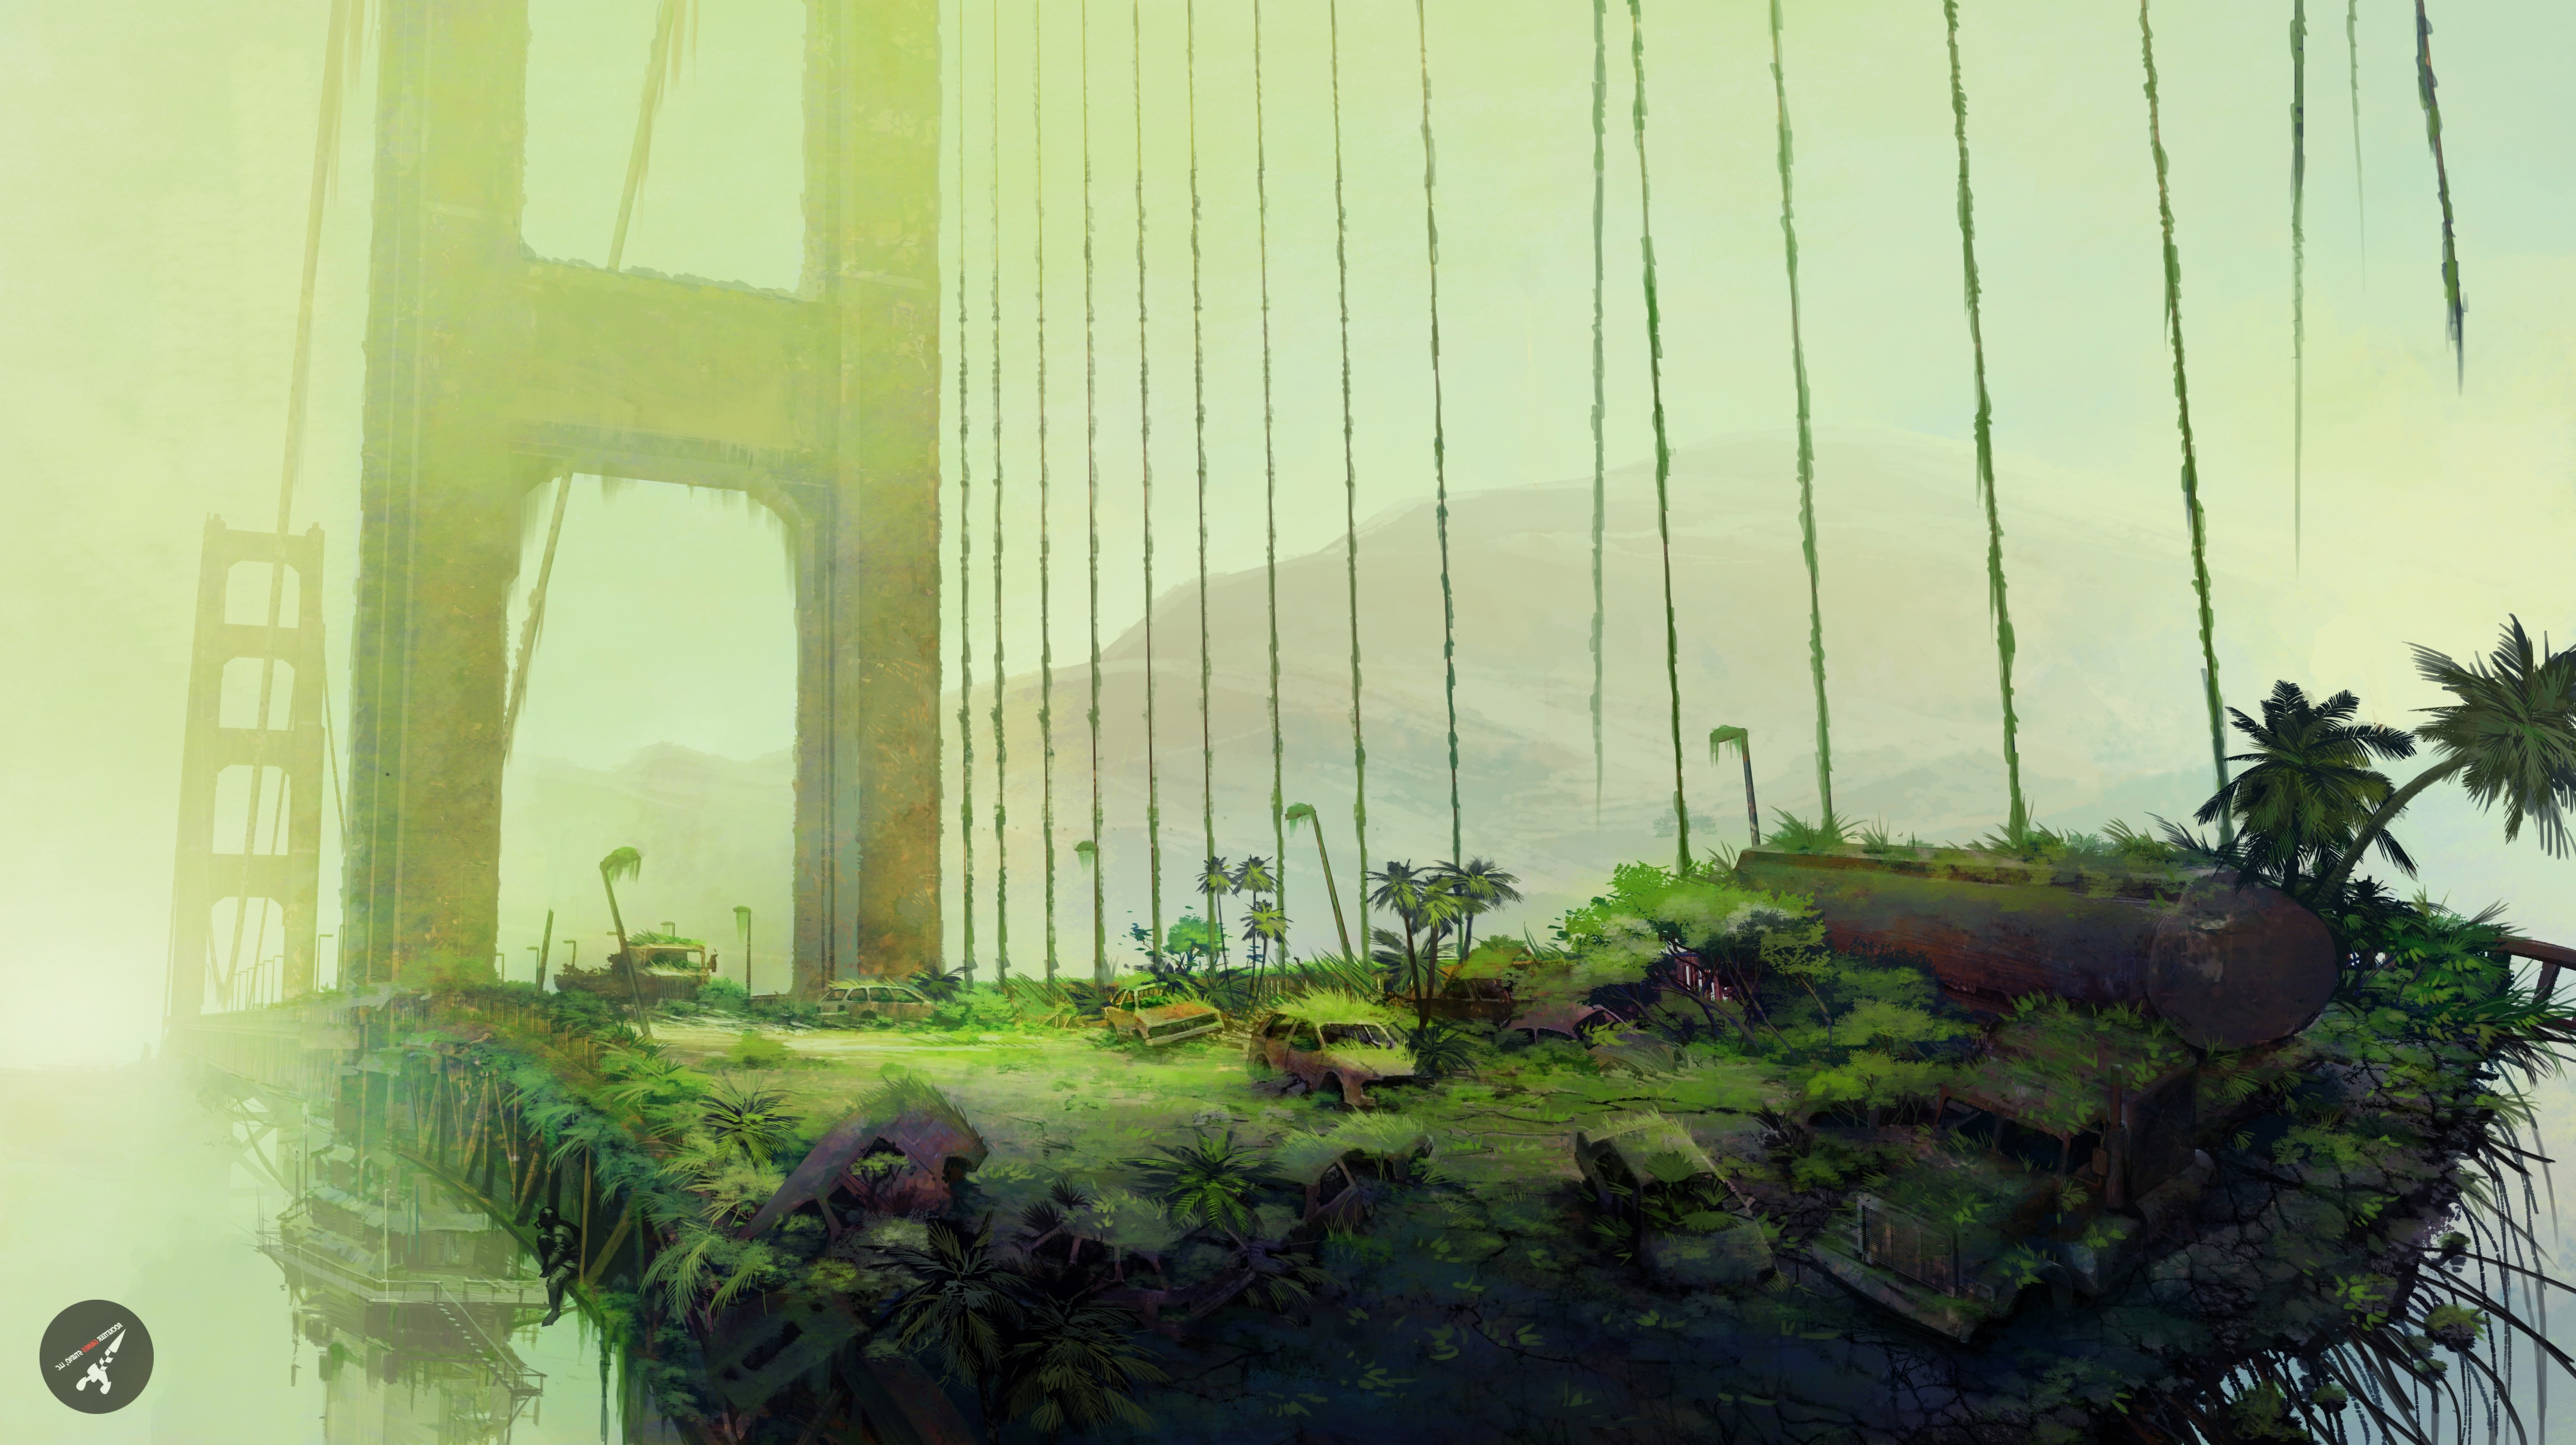 Epic Movie Hd Wallpapers Artwork Apocalyptic Nature Golden Gate Bridge Forest